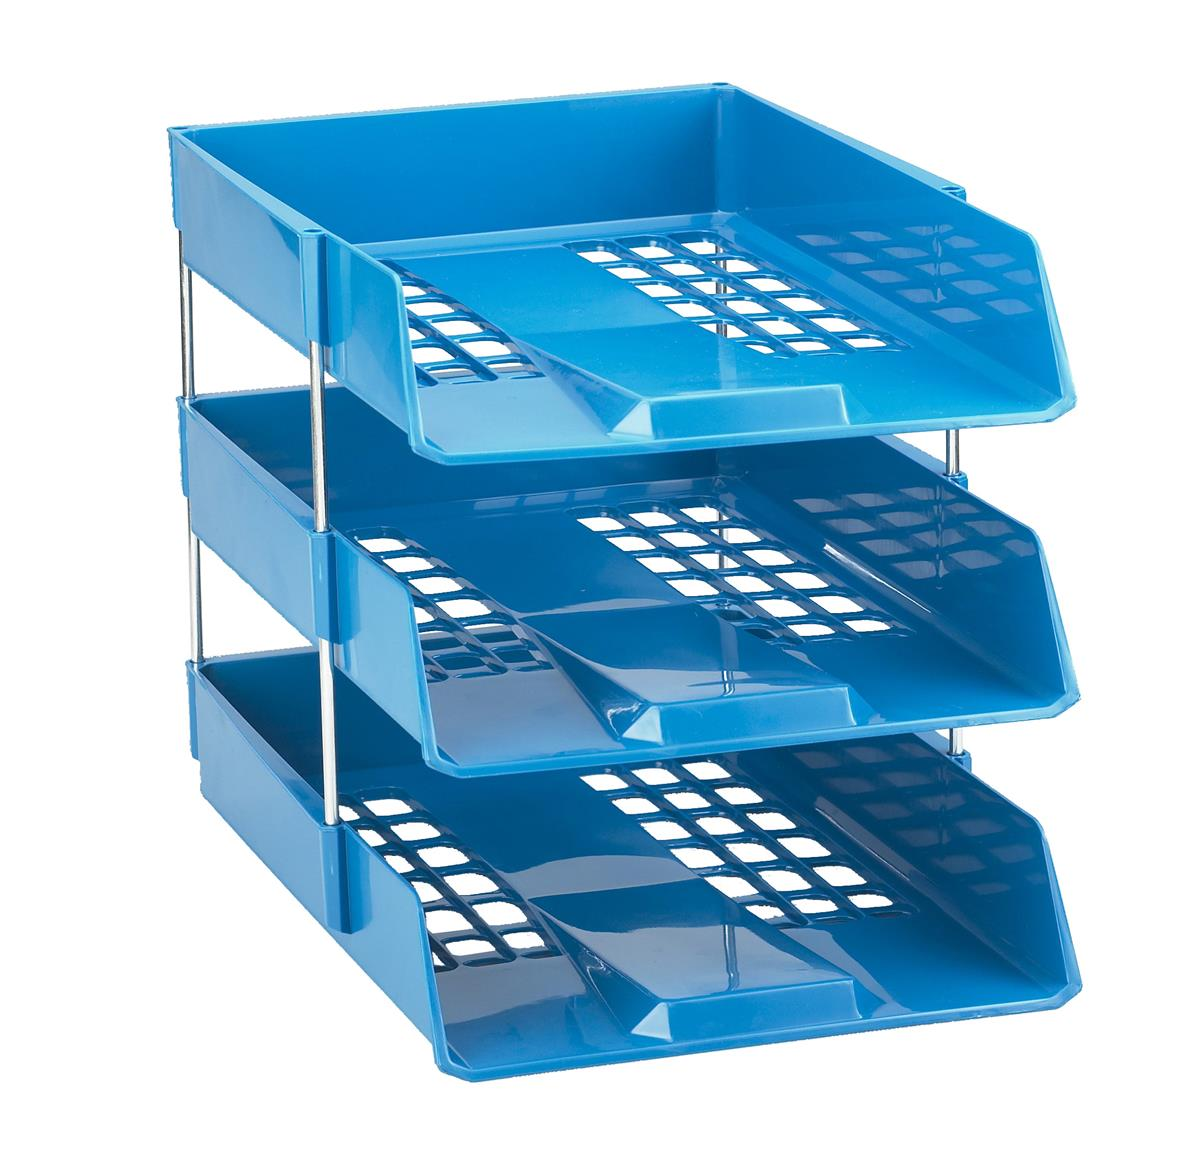 Image for Avery Basics Letter Tray Stackable Versatile A4 Foolscap W278xD390xH70mm Blue Ref 1132BLUE